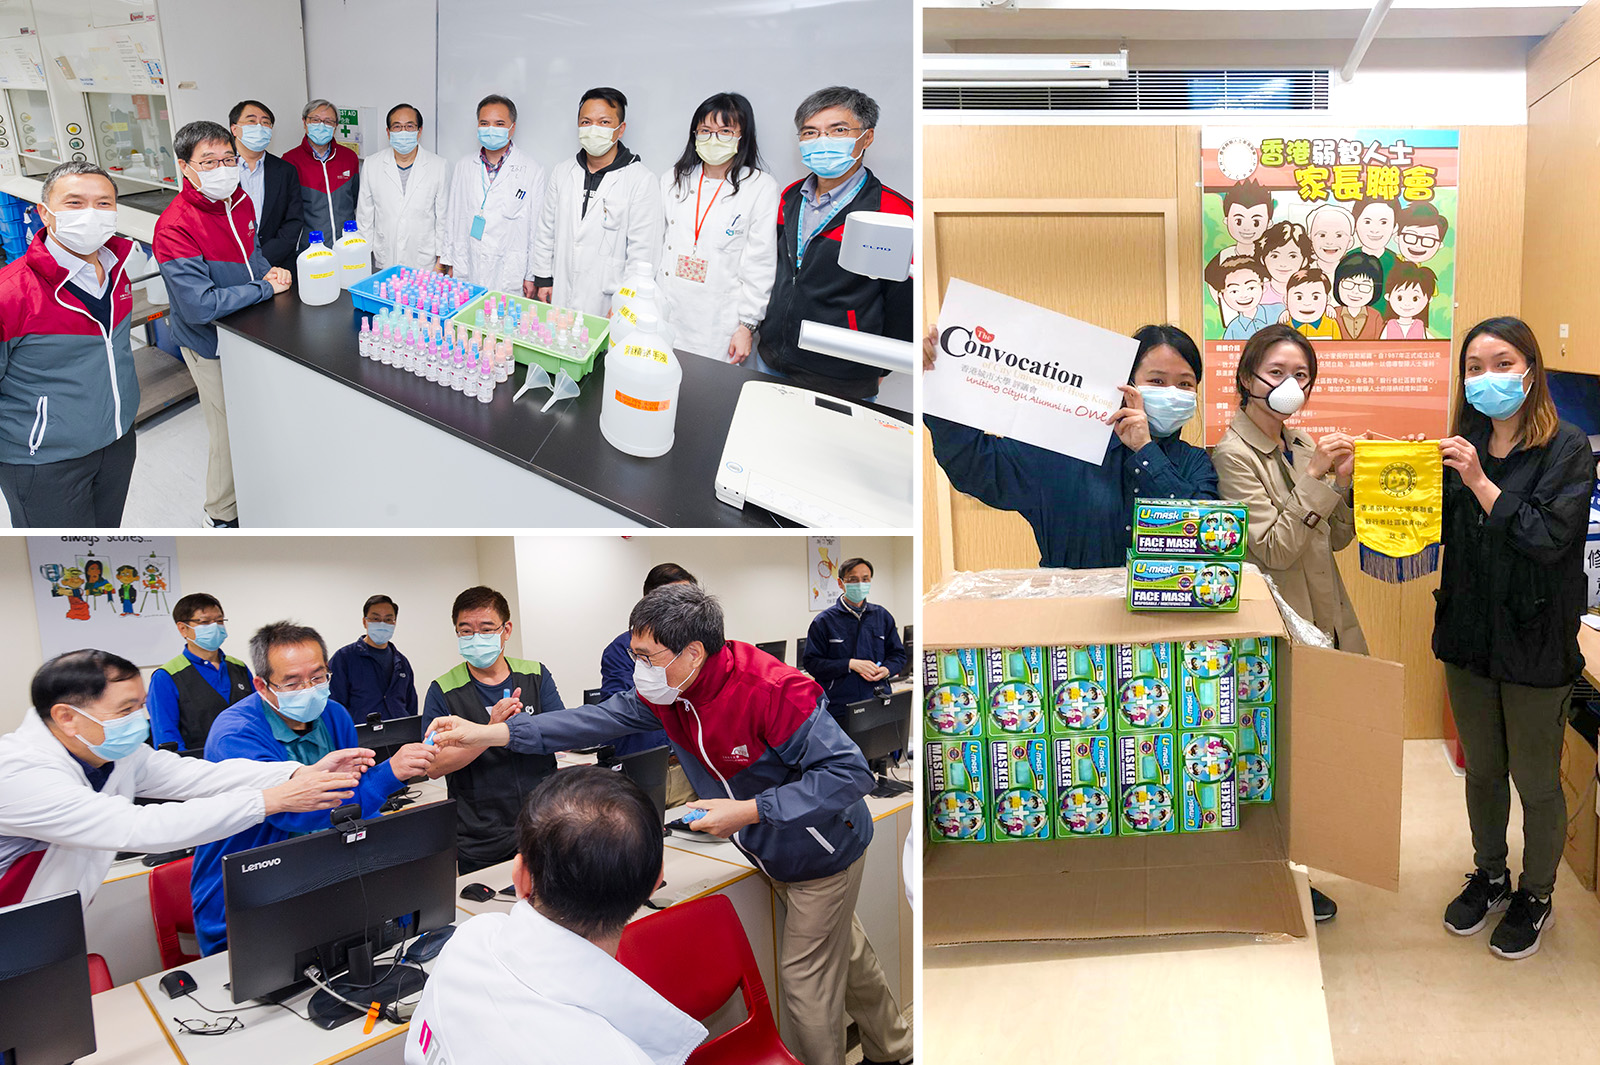 CityU community distributes anti-epidemic products to the community to help fight the spread of the epidemic.